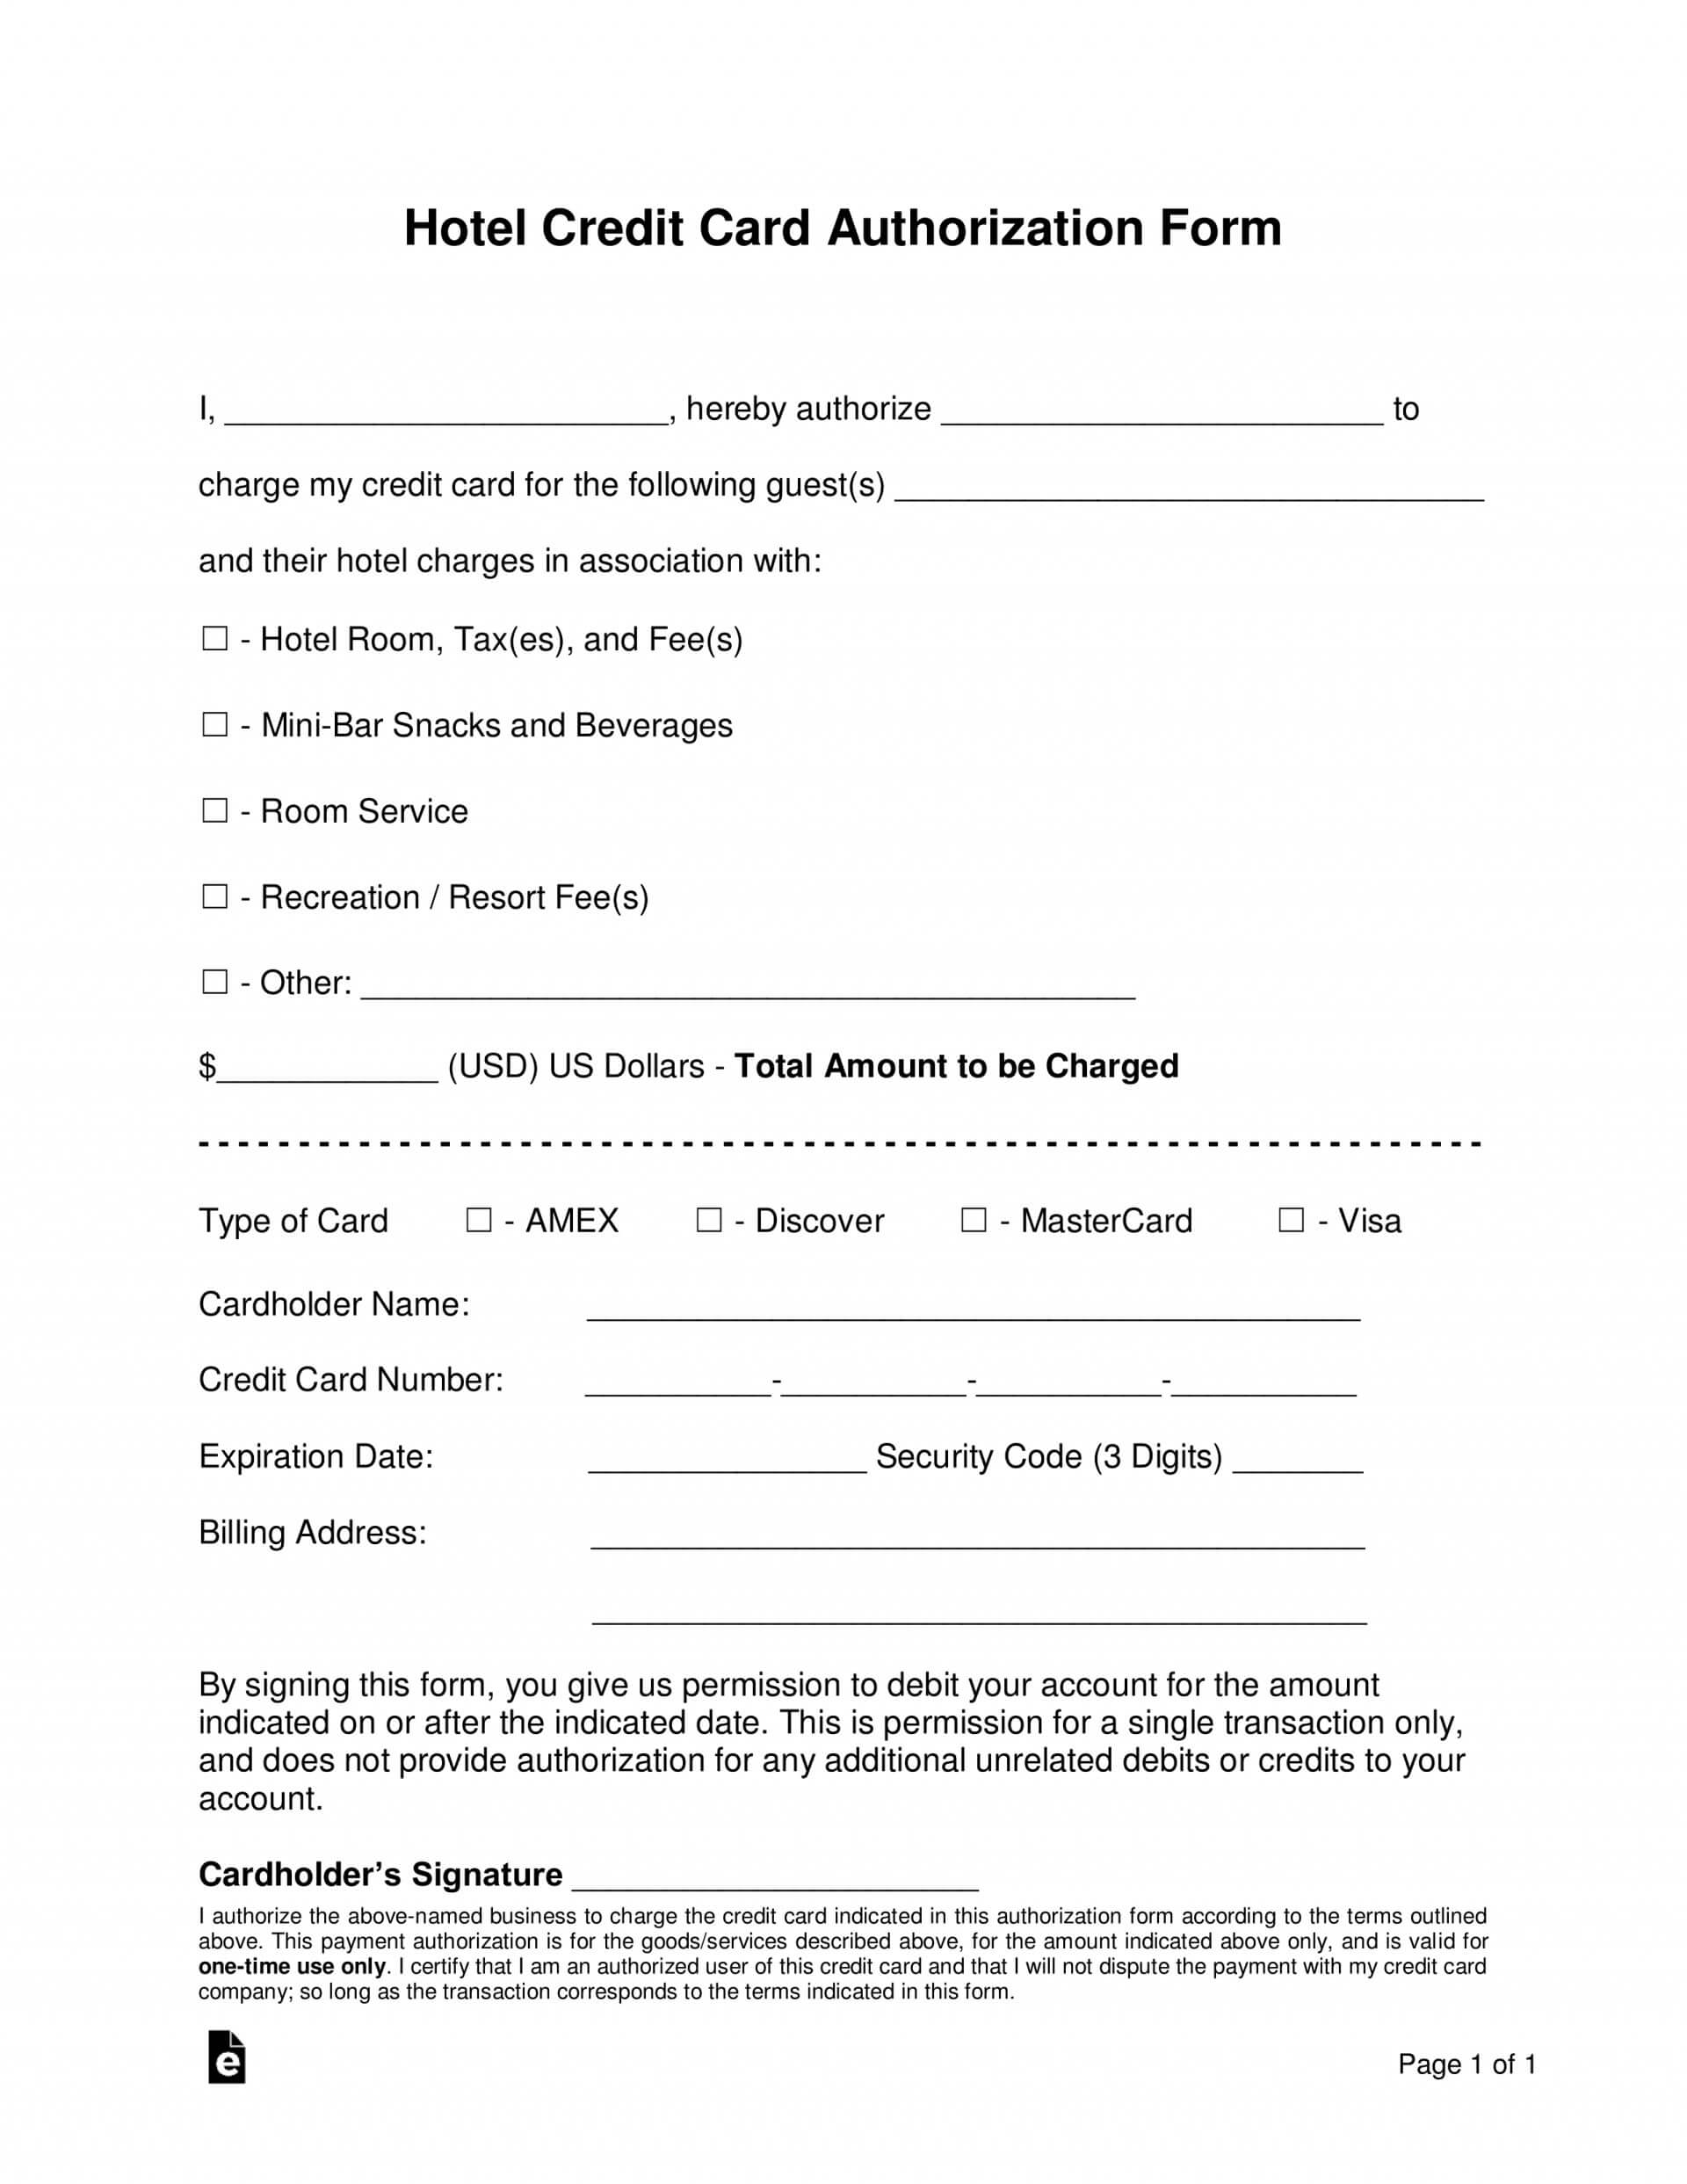 013 Credit Card Authorization Form Template Doc Hotel For Hotel Credit Card Authorization Form Template